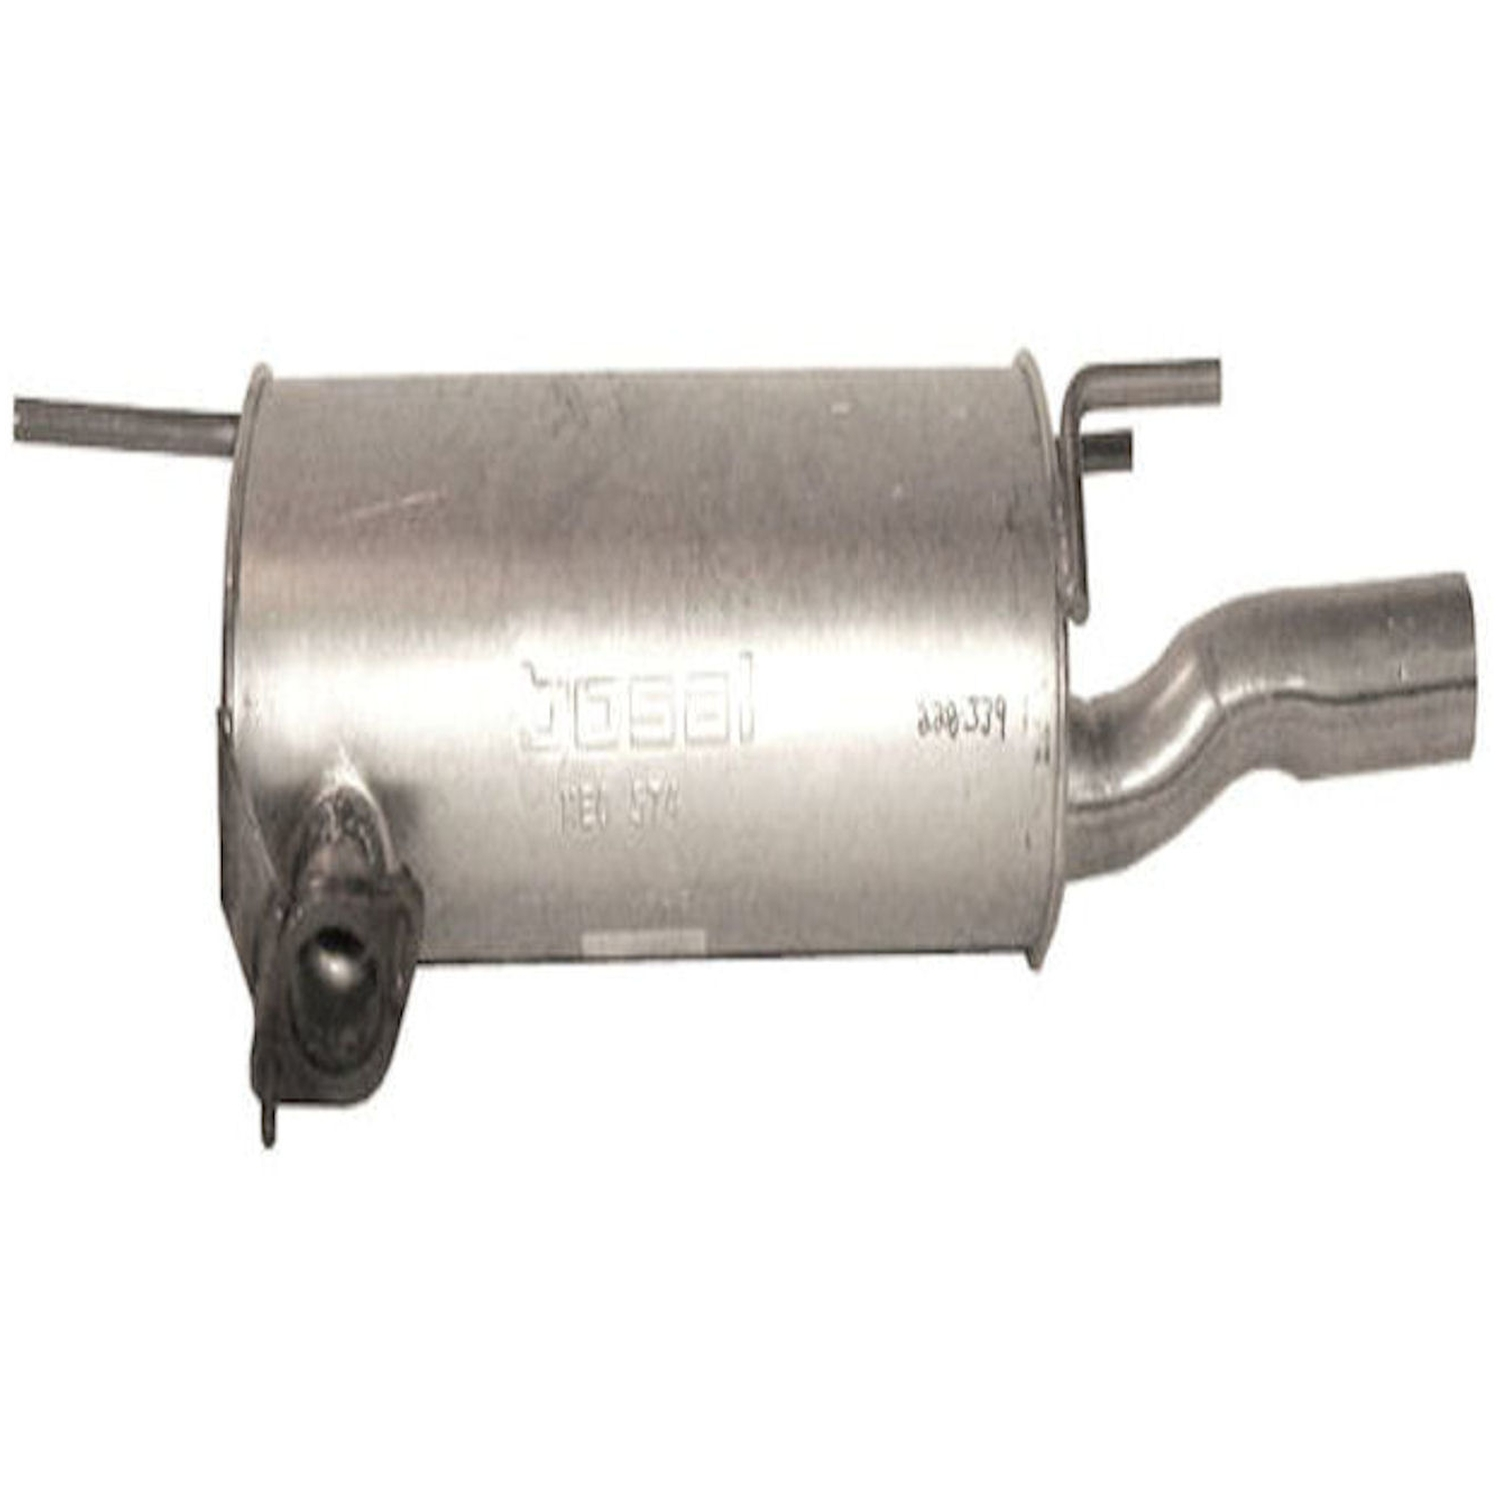 Exhaust Muffler Assembly